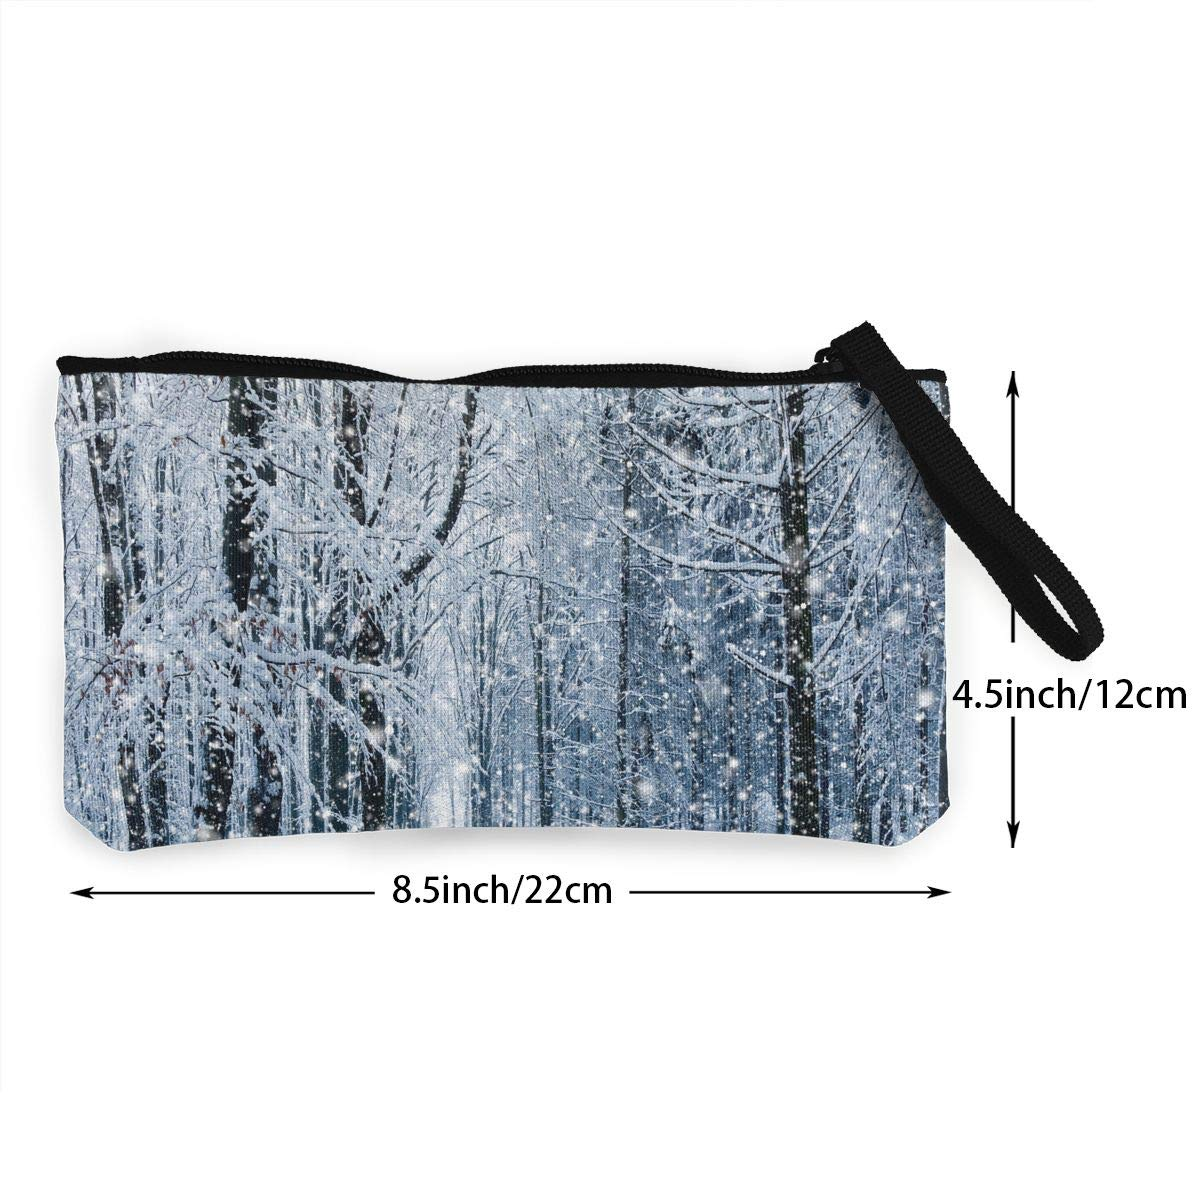 Maple Memories Winter Forest Portable Canvas Coin Purse Change Purse Pouch Mini Wallet Gifts For Women Girls